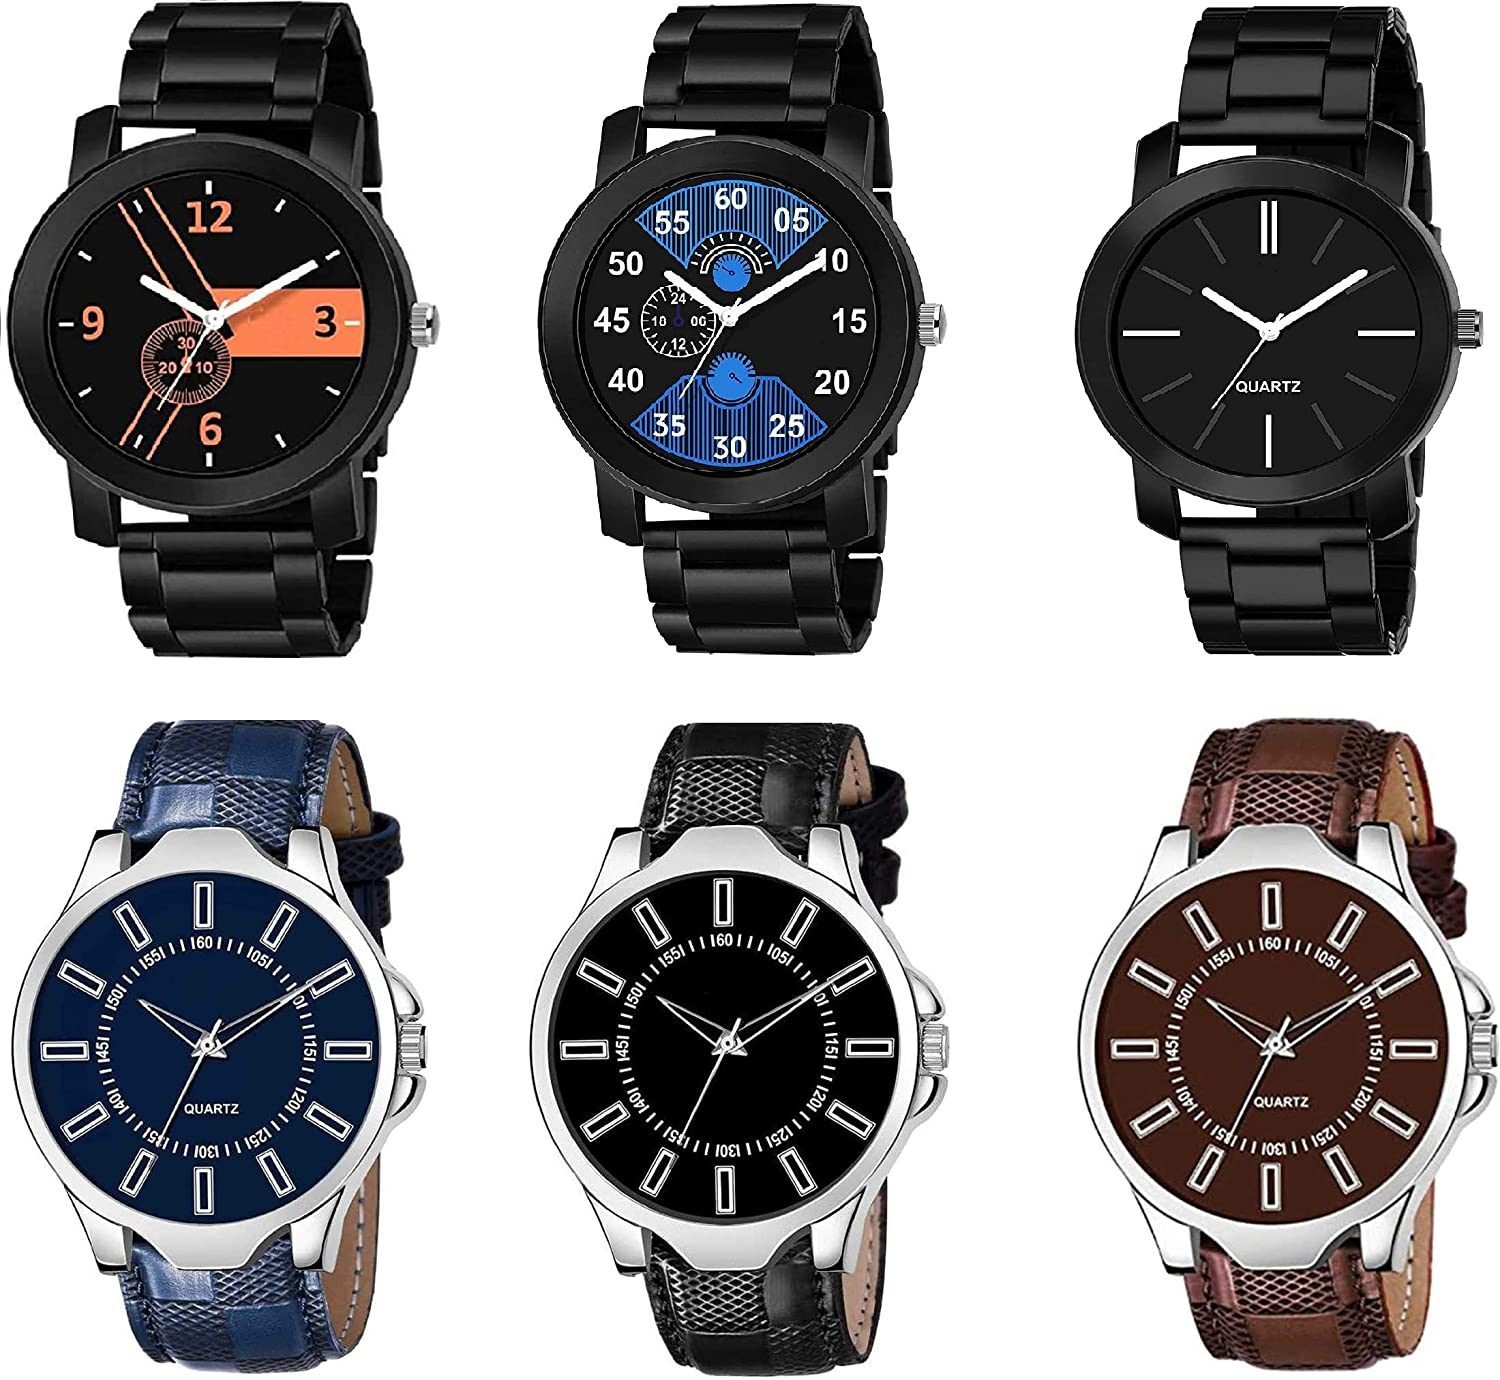 RPS FASHION WITH DEVICE OF R Analog Display Attractive Multicolor Dial Watch Combo 6